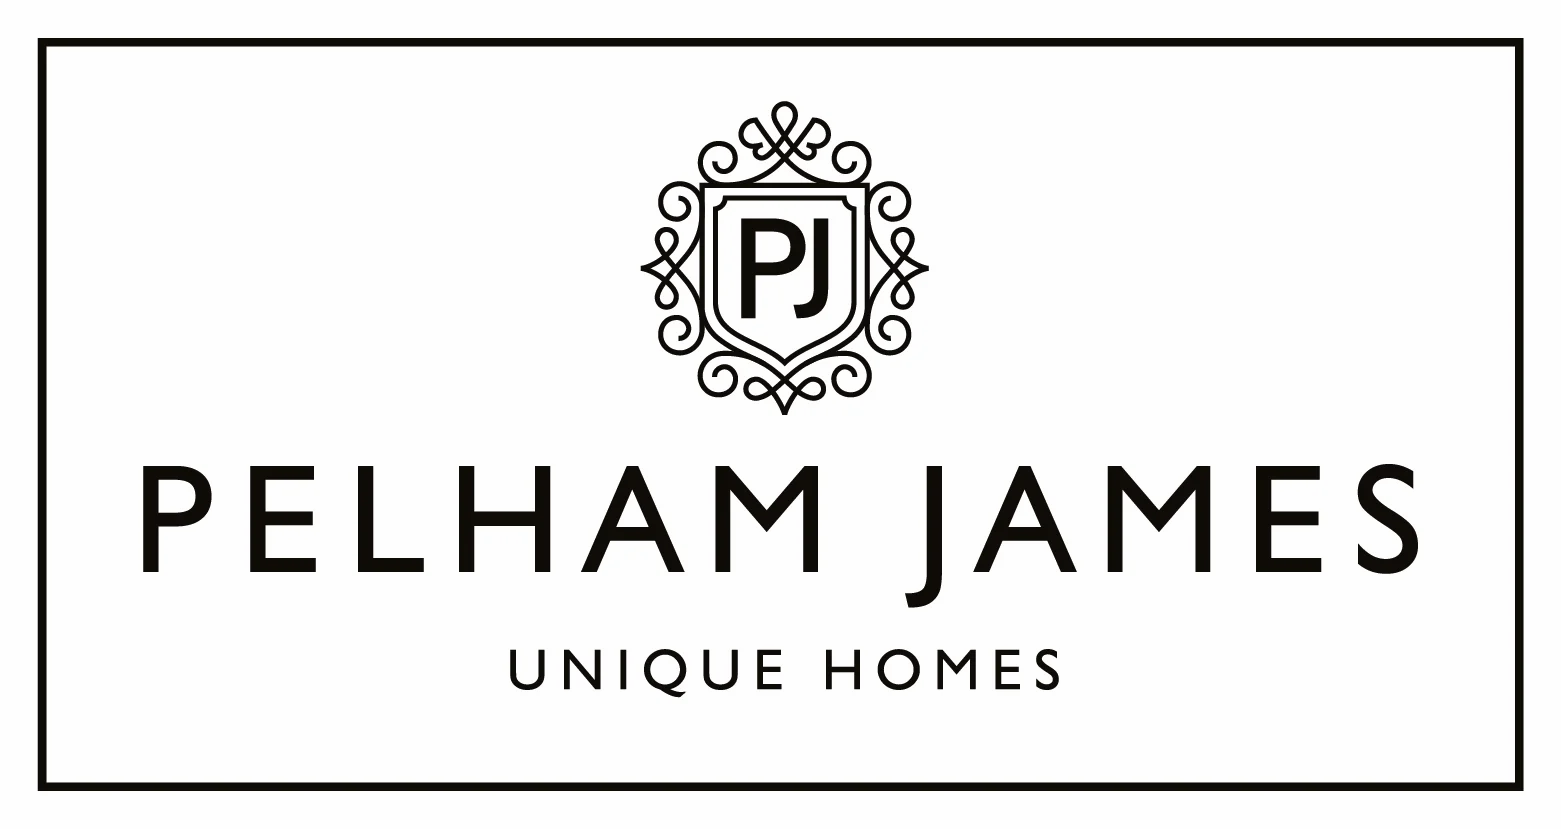 PELHAM_JAMES_-_UNIQUE_HOMES_Logos-outlin